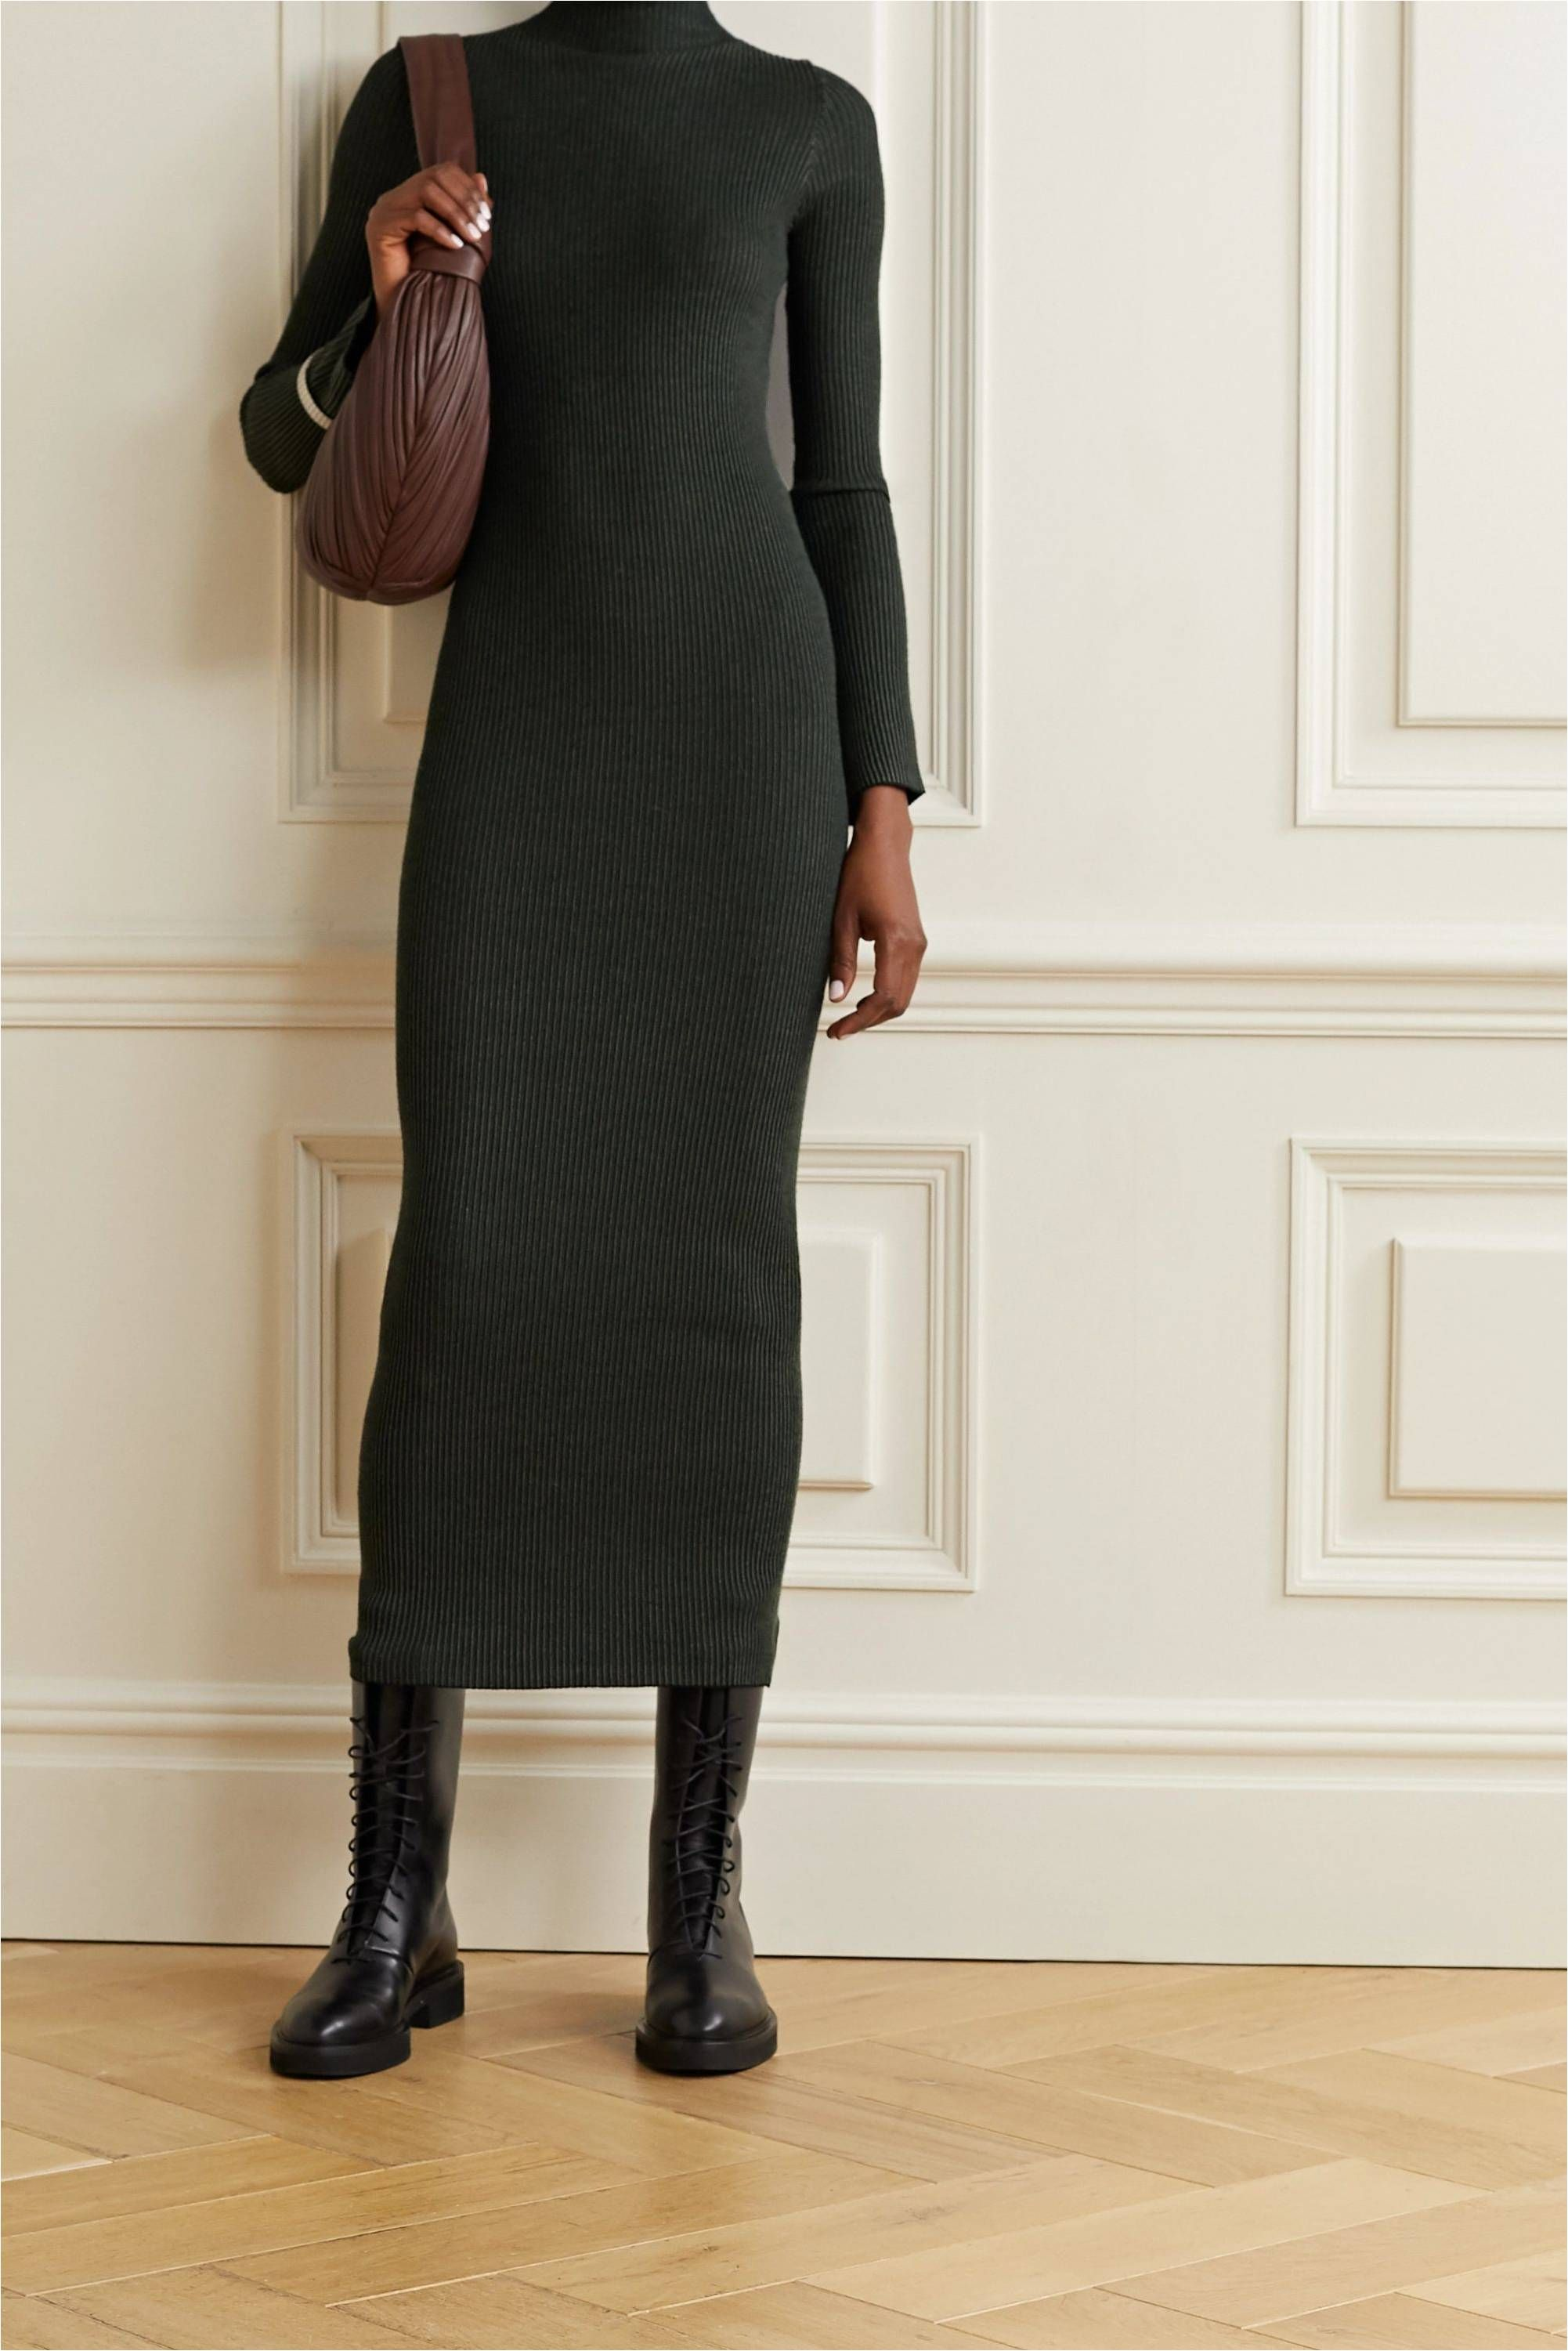 The Best Sweater Dresses For Cozy Chic Style 2021 In 2021 Knit Midi Dress Sweater Dress Women Sweater Dress Midi [ 3001 x 2002 Pixel ]